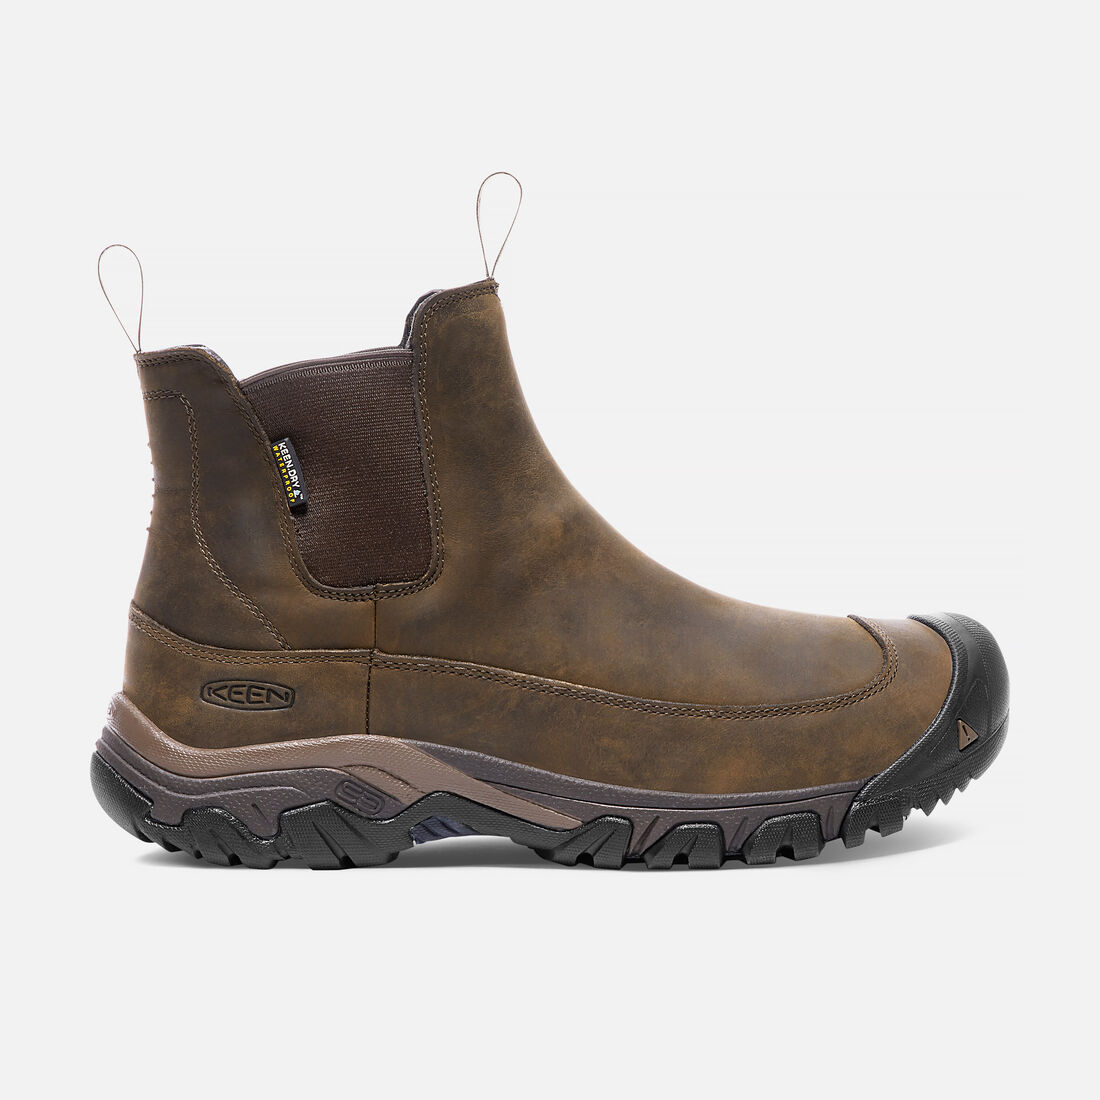 MEN'S ANCHORAGE III WATERPROOF  BOOTS in Dark Earth/Mulch - large view.